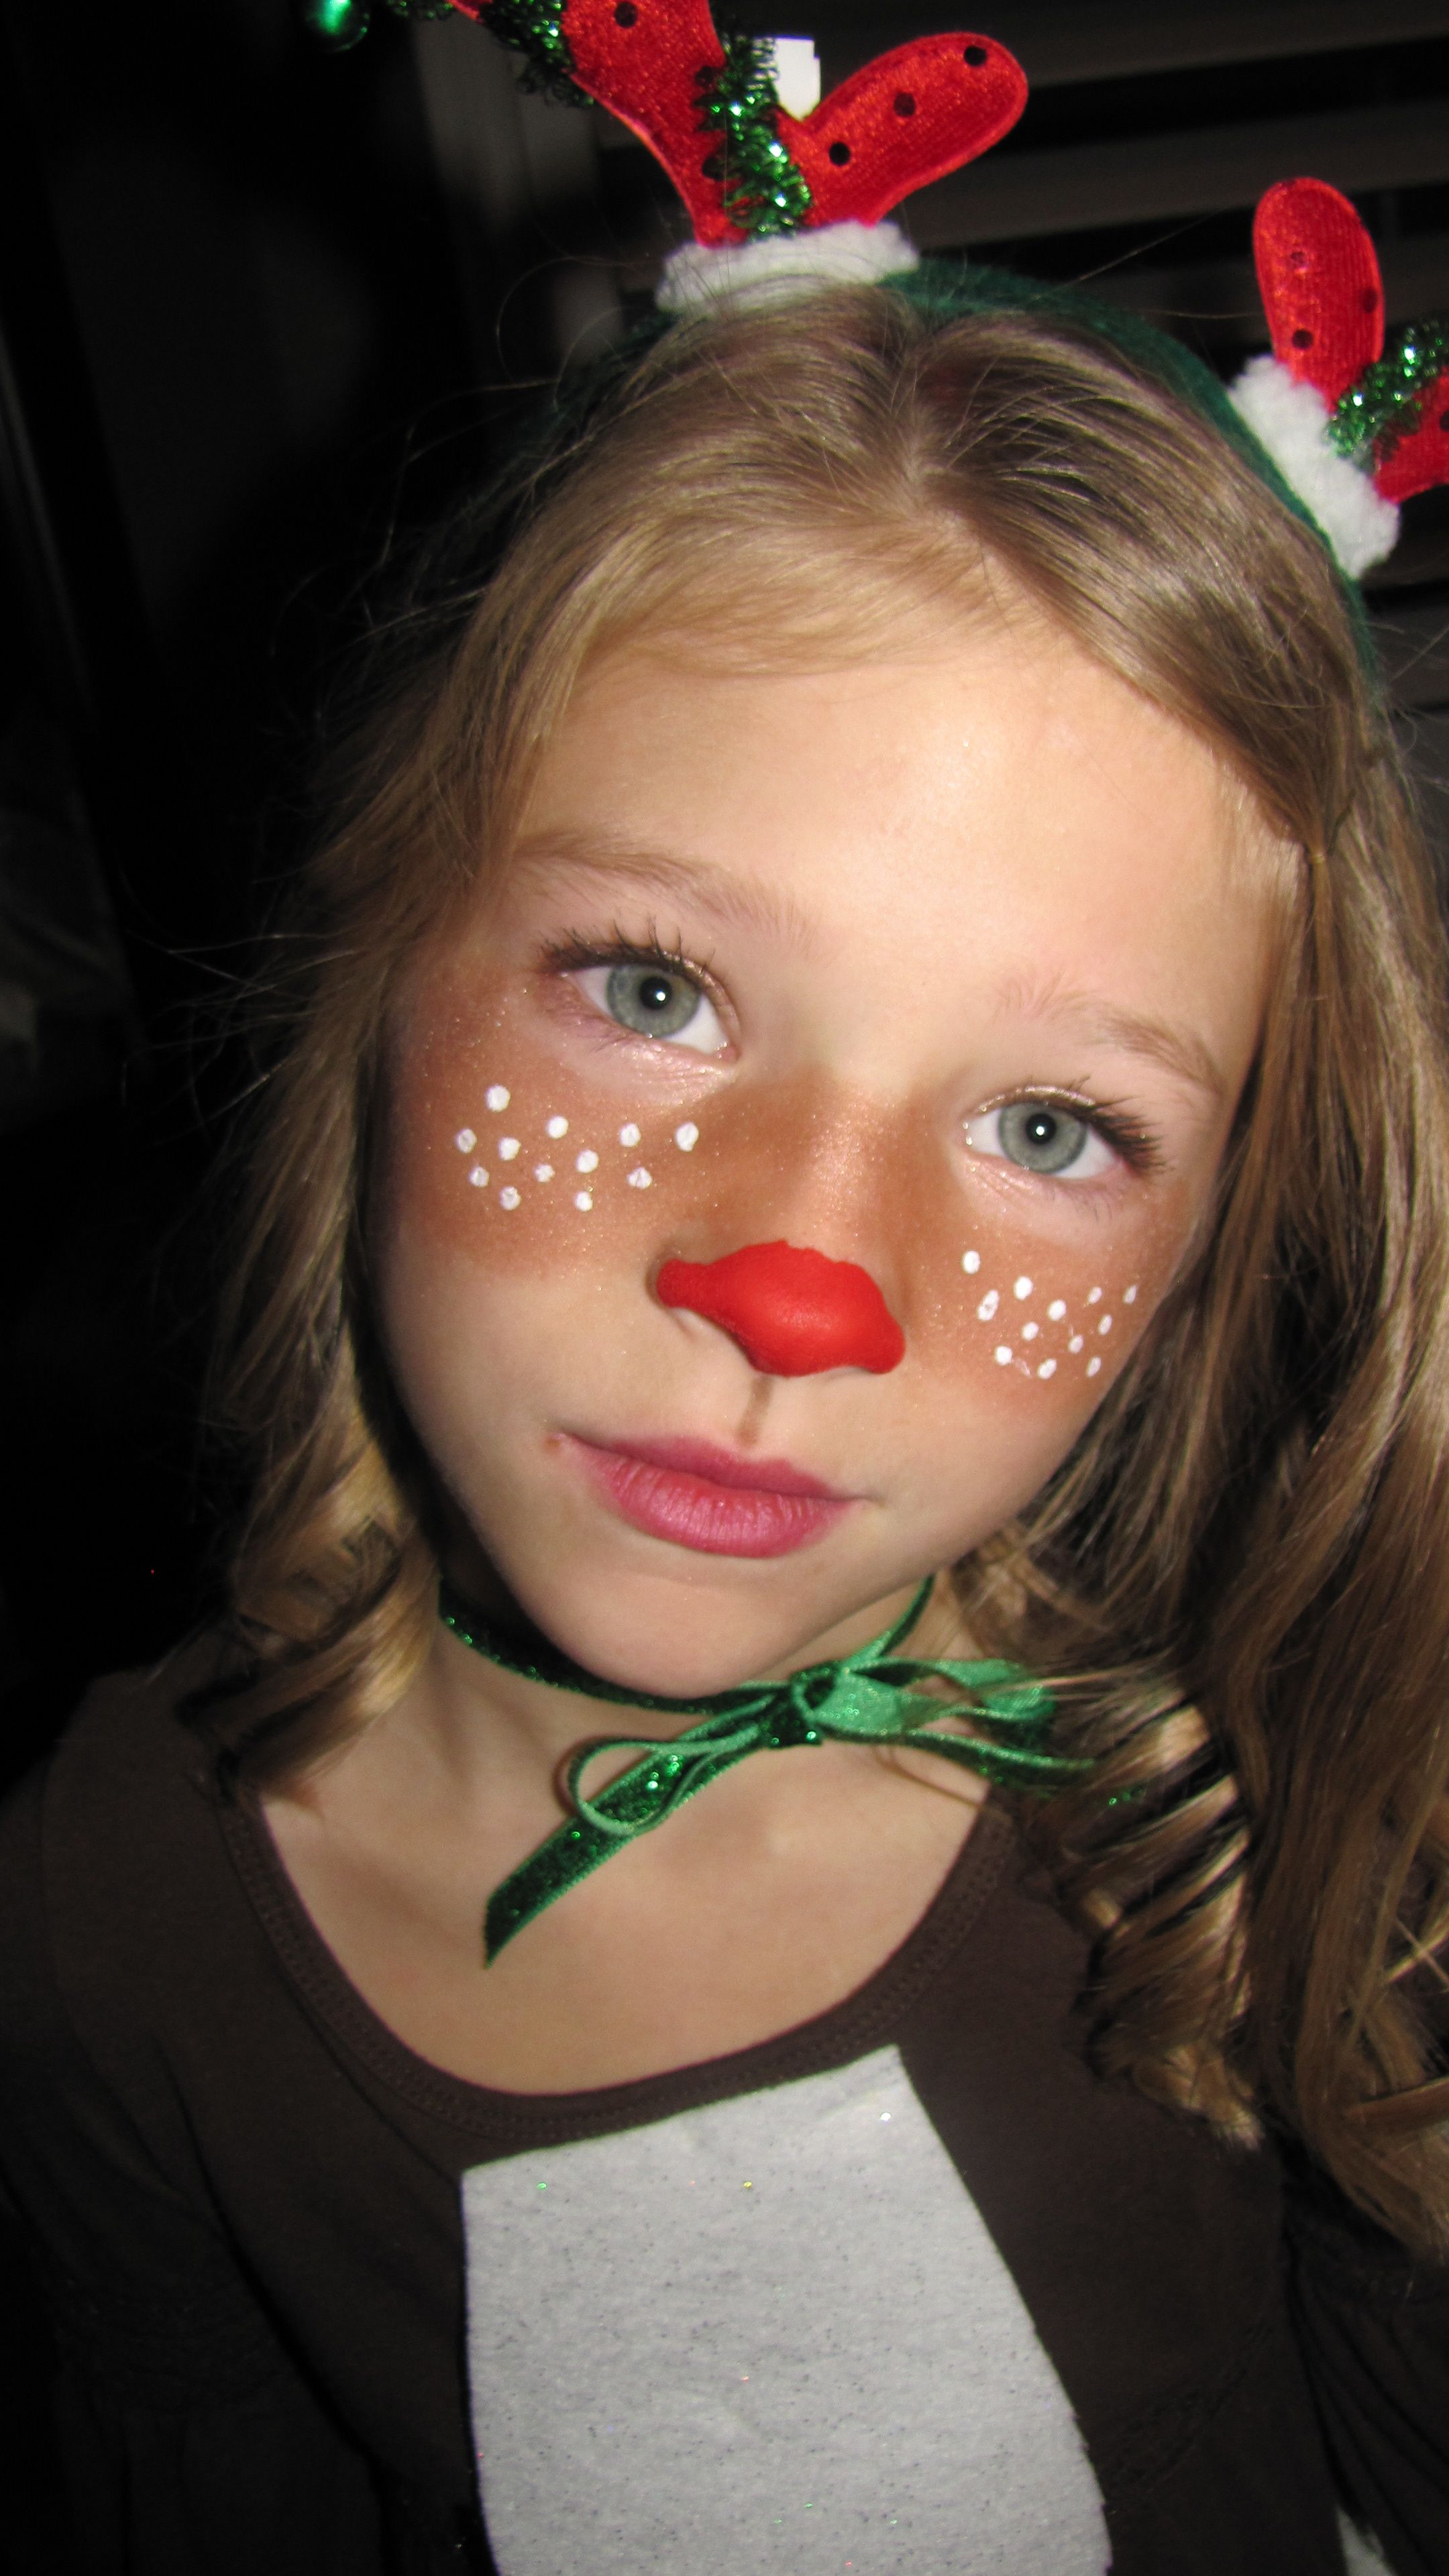 Uncategorized Bunny Nose Face Paint quick rudolph face bronzer for brown cheeks and acrylic paint nose white dots